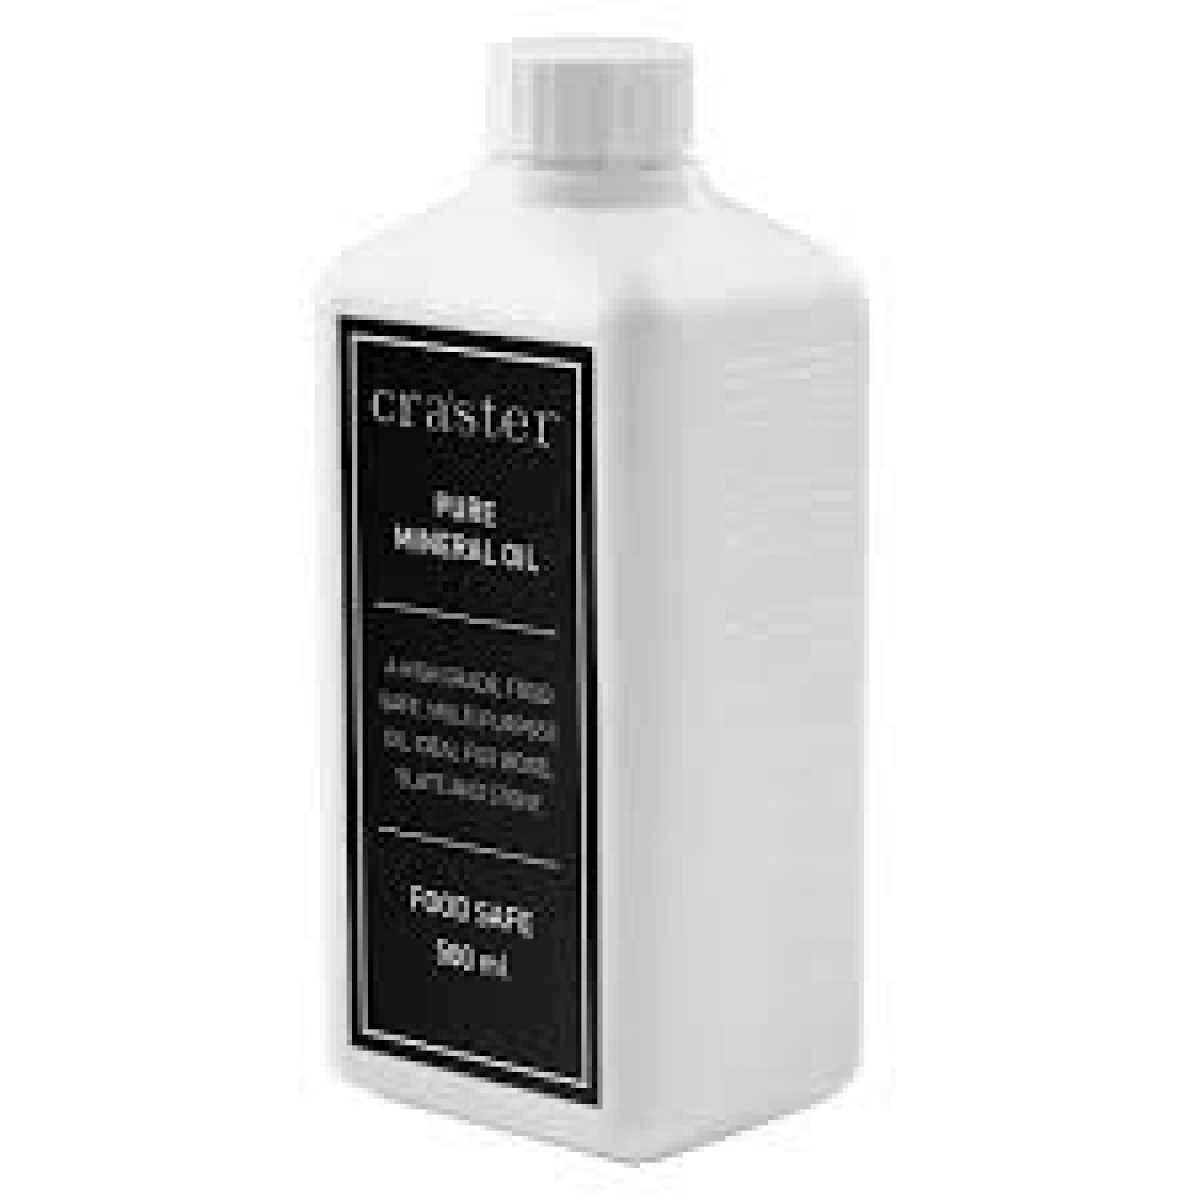 CRASTER Saf Mineral Yağ, 500 ml